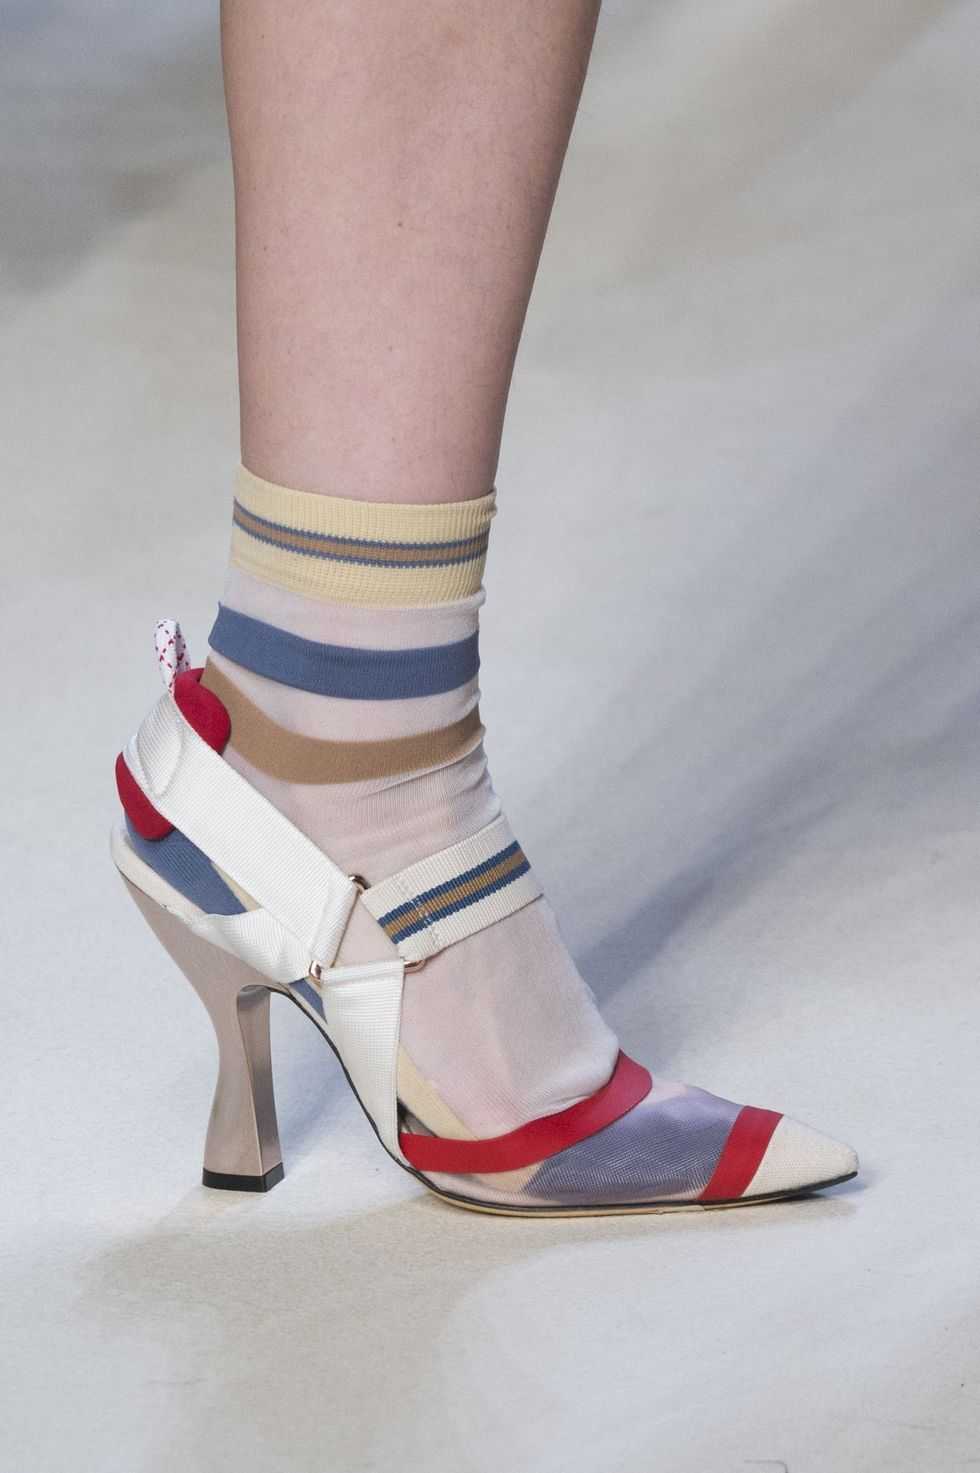 The Hottest Spring 2018 Shoes From The Runways | Pantlouc ...